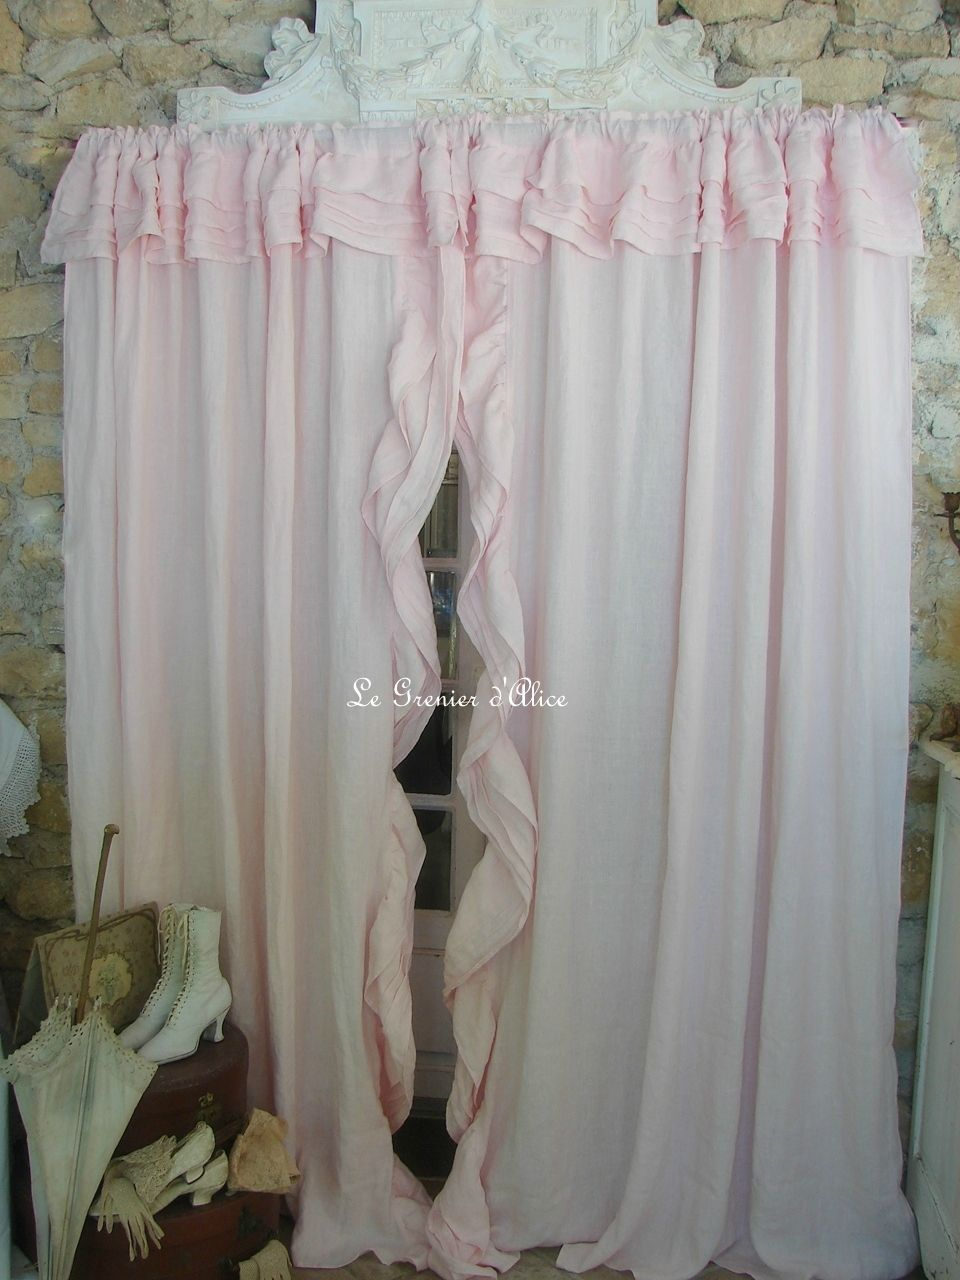 Des rideaux shabby chic lin stone washed rose poudr le for Rideaux style shabby